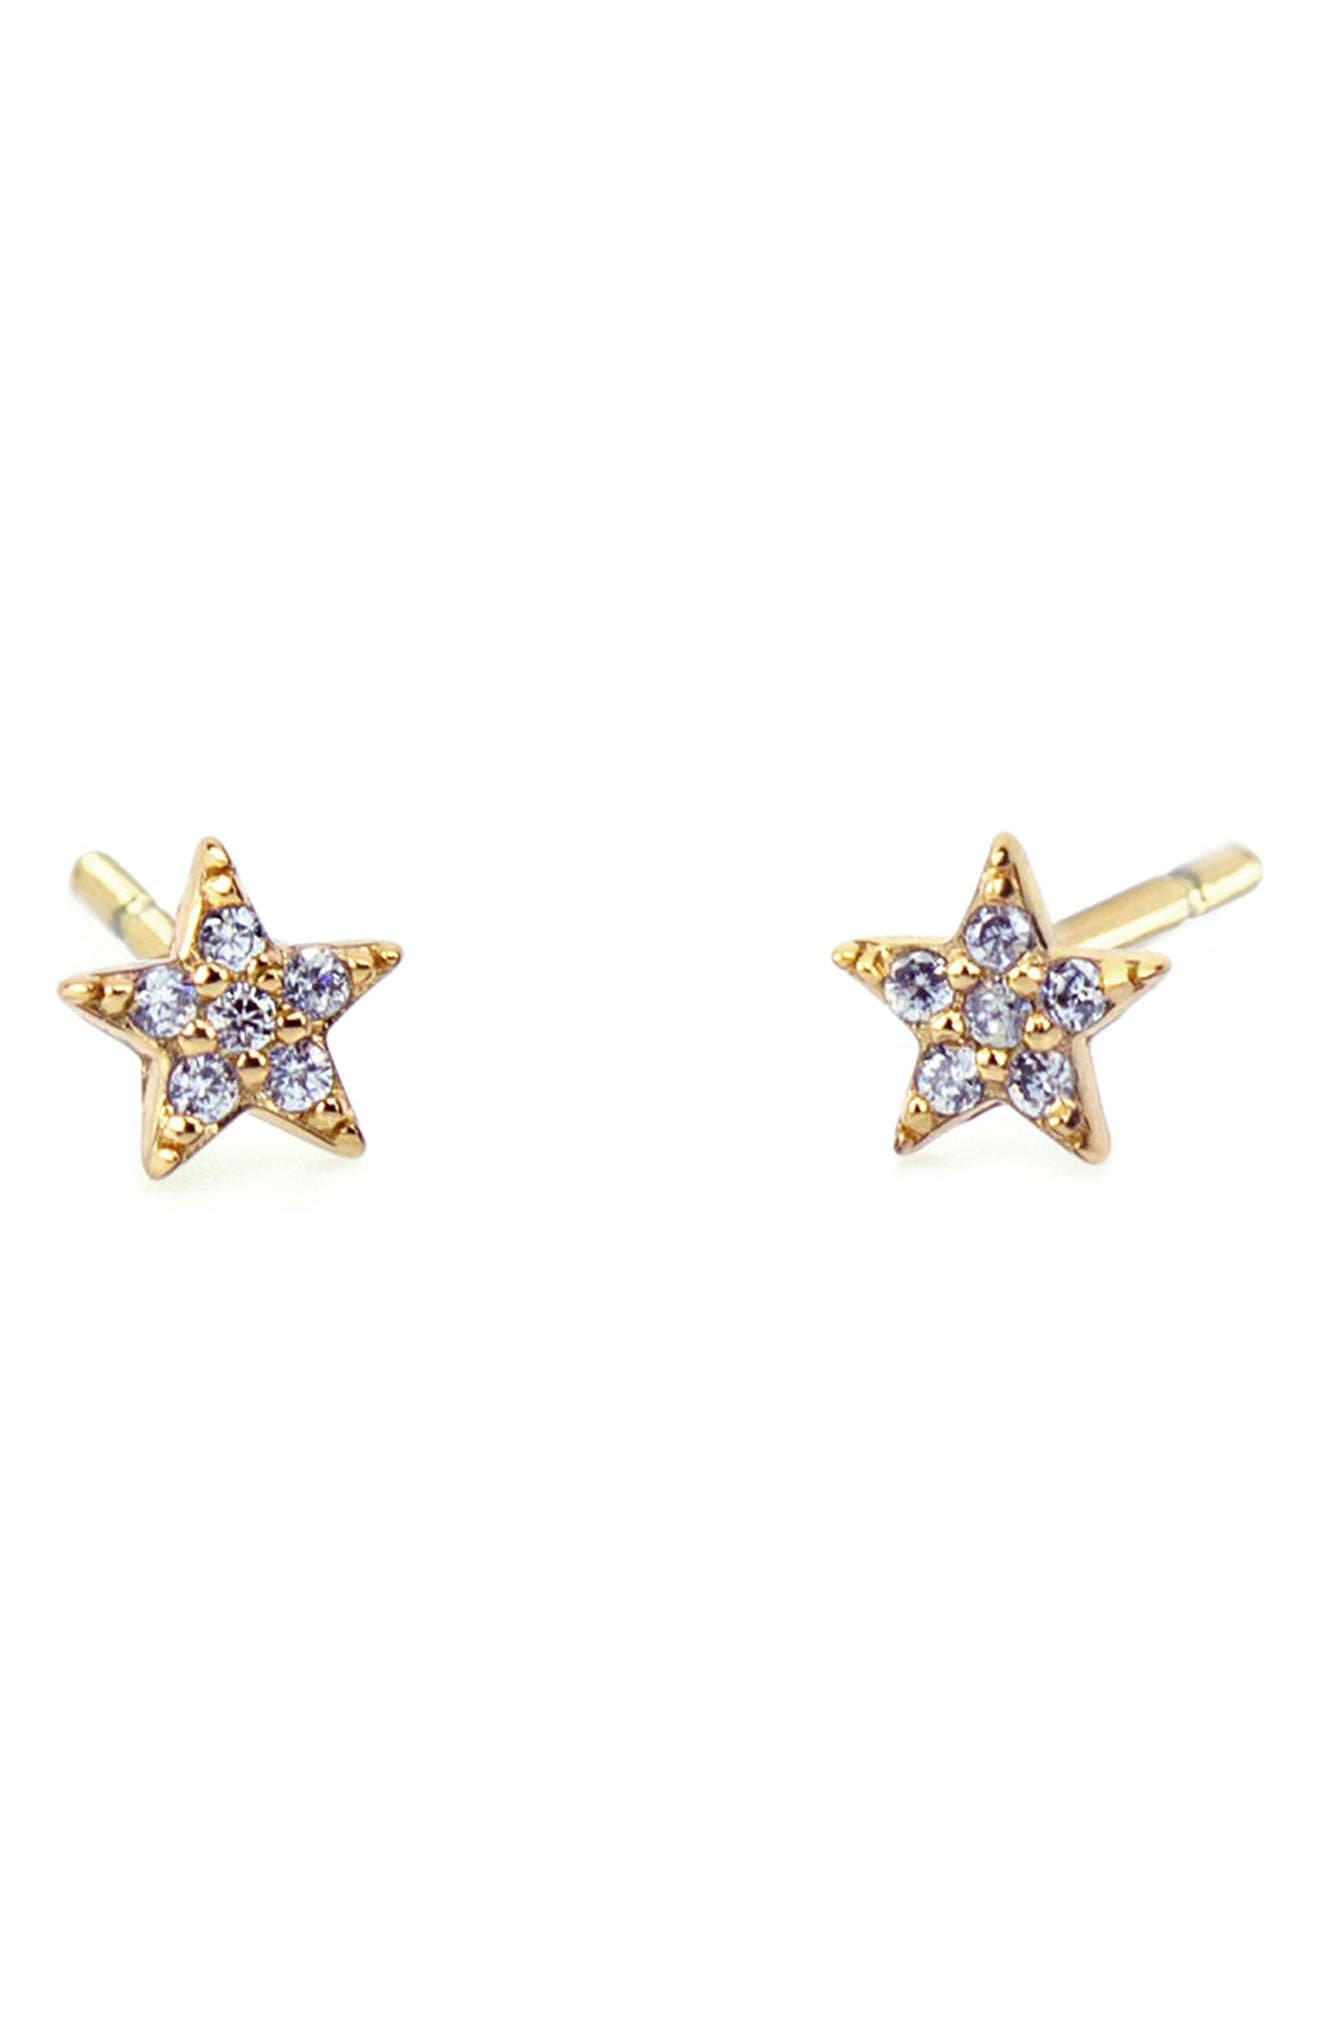 Kris Nations Pavé Star Stud Earrings